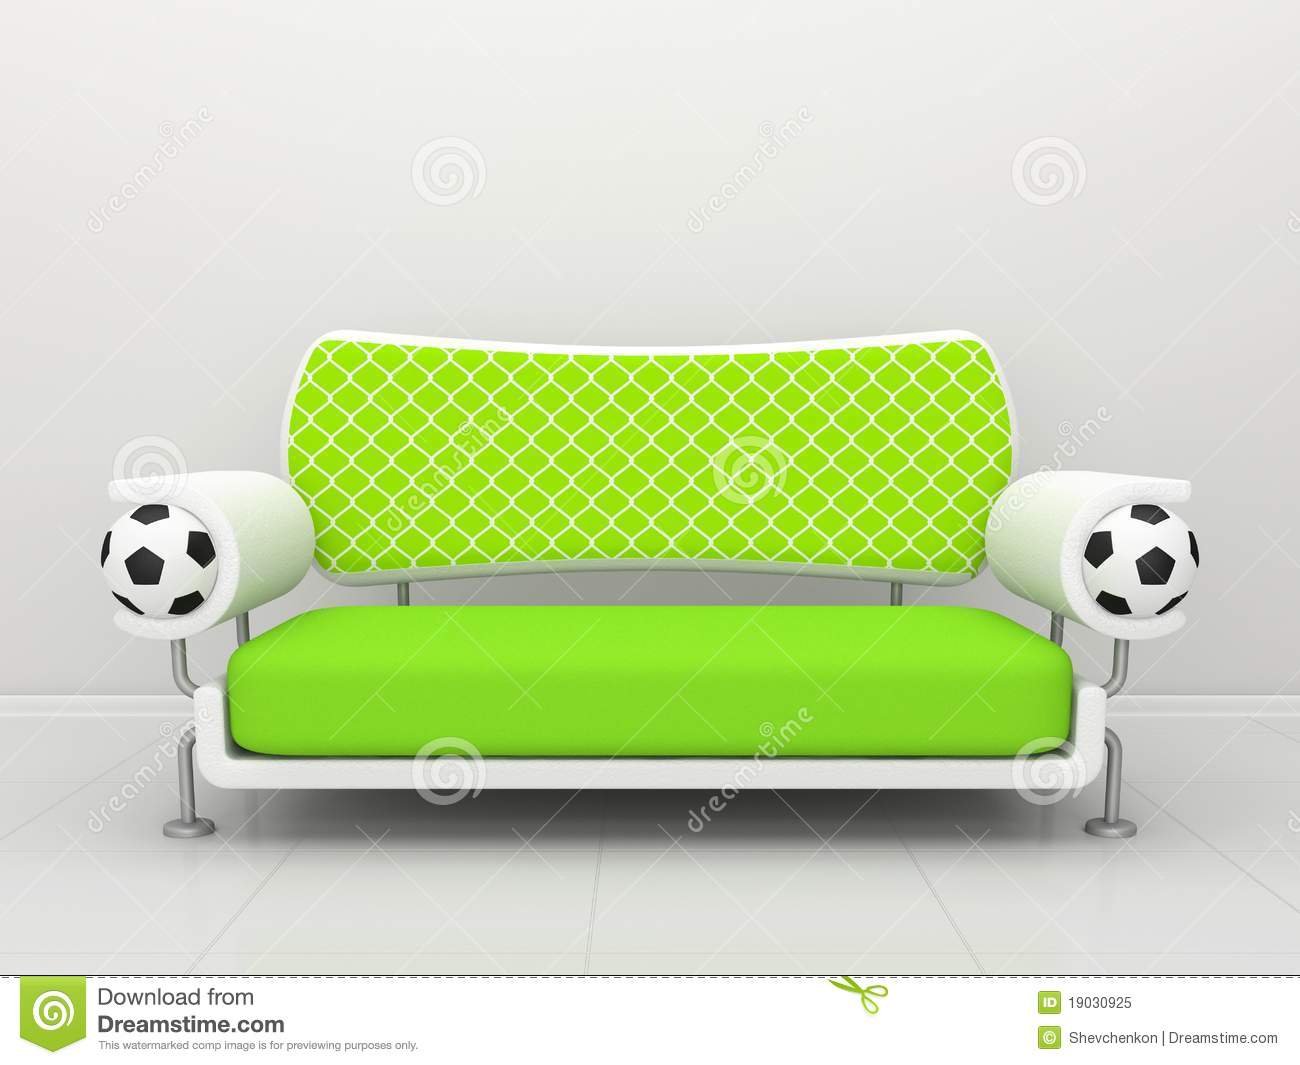 gr nes sofa mit fu ball symbolics lizenzfreies stockfoto bild 19030925. Black Bedroom Furniture Sets. Home Design Ideas